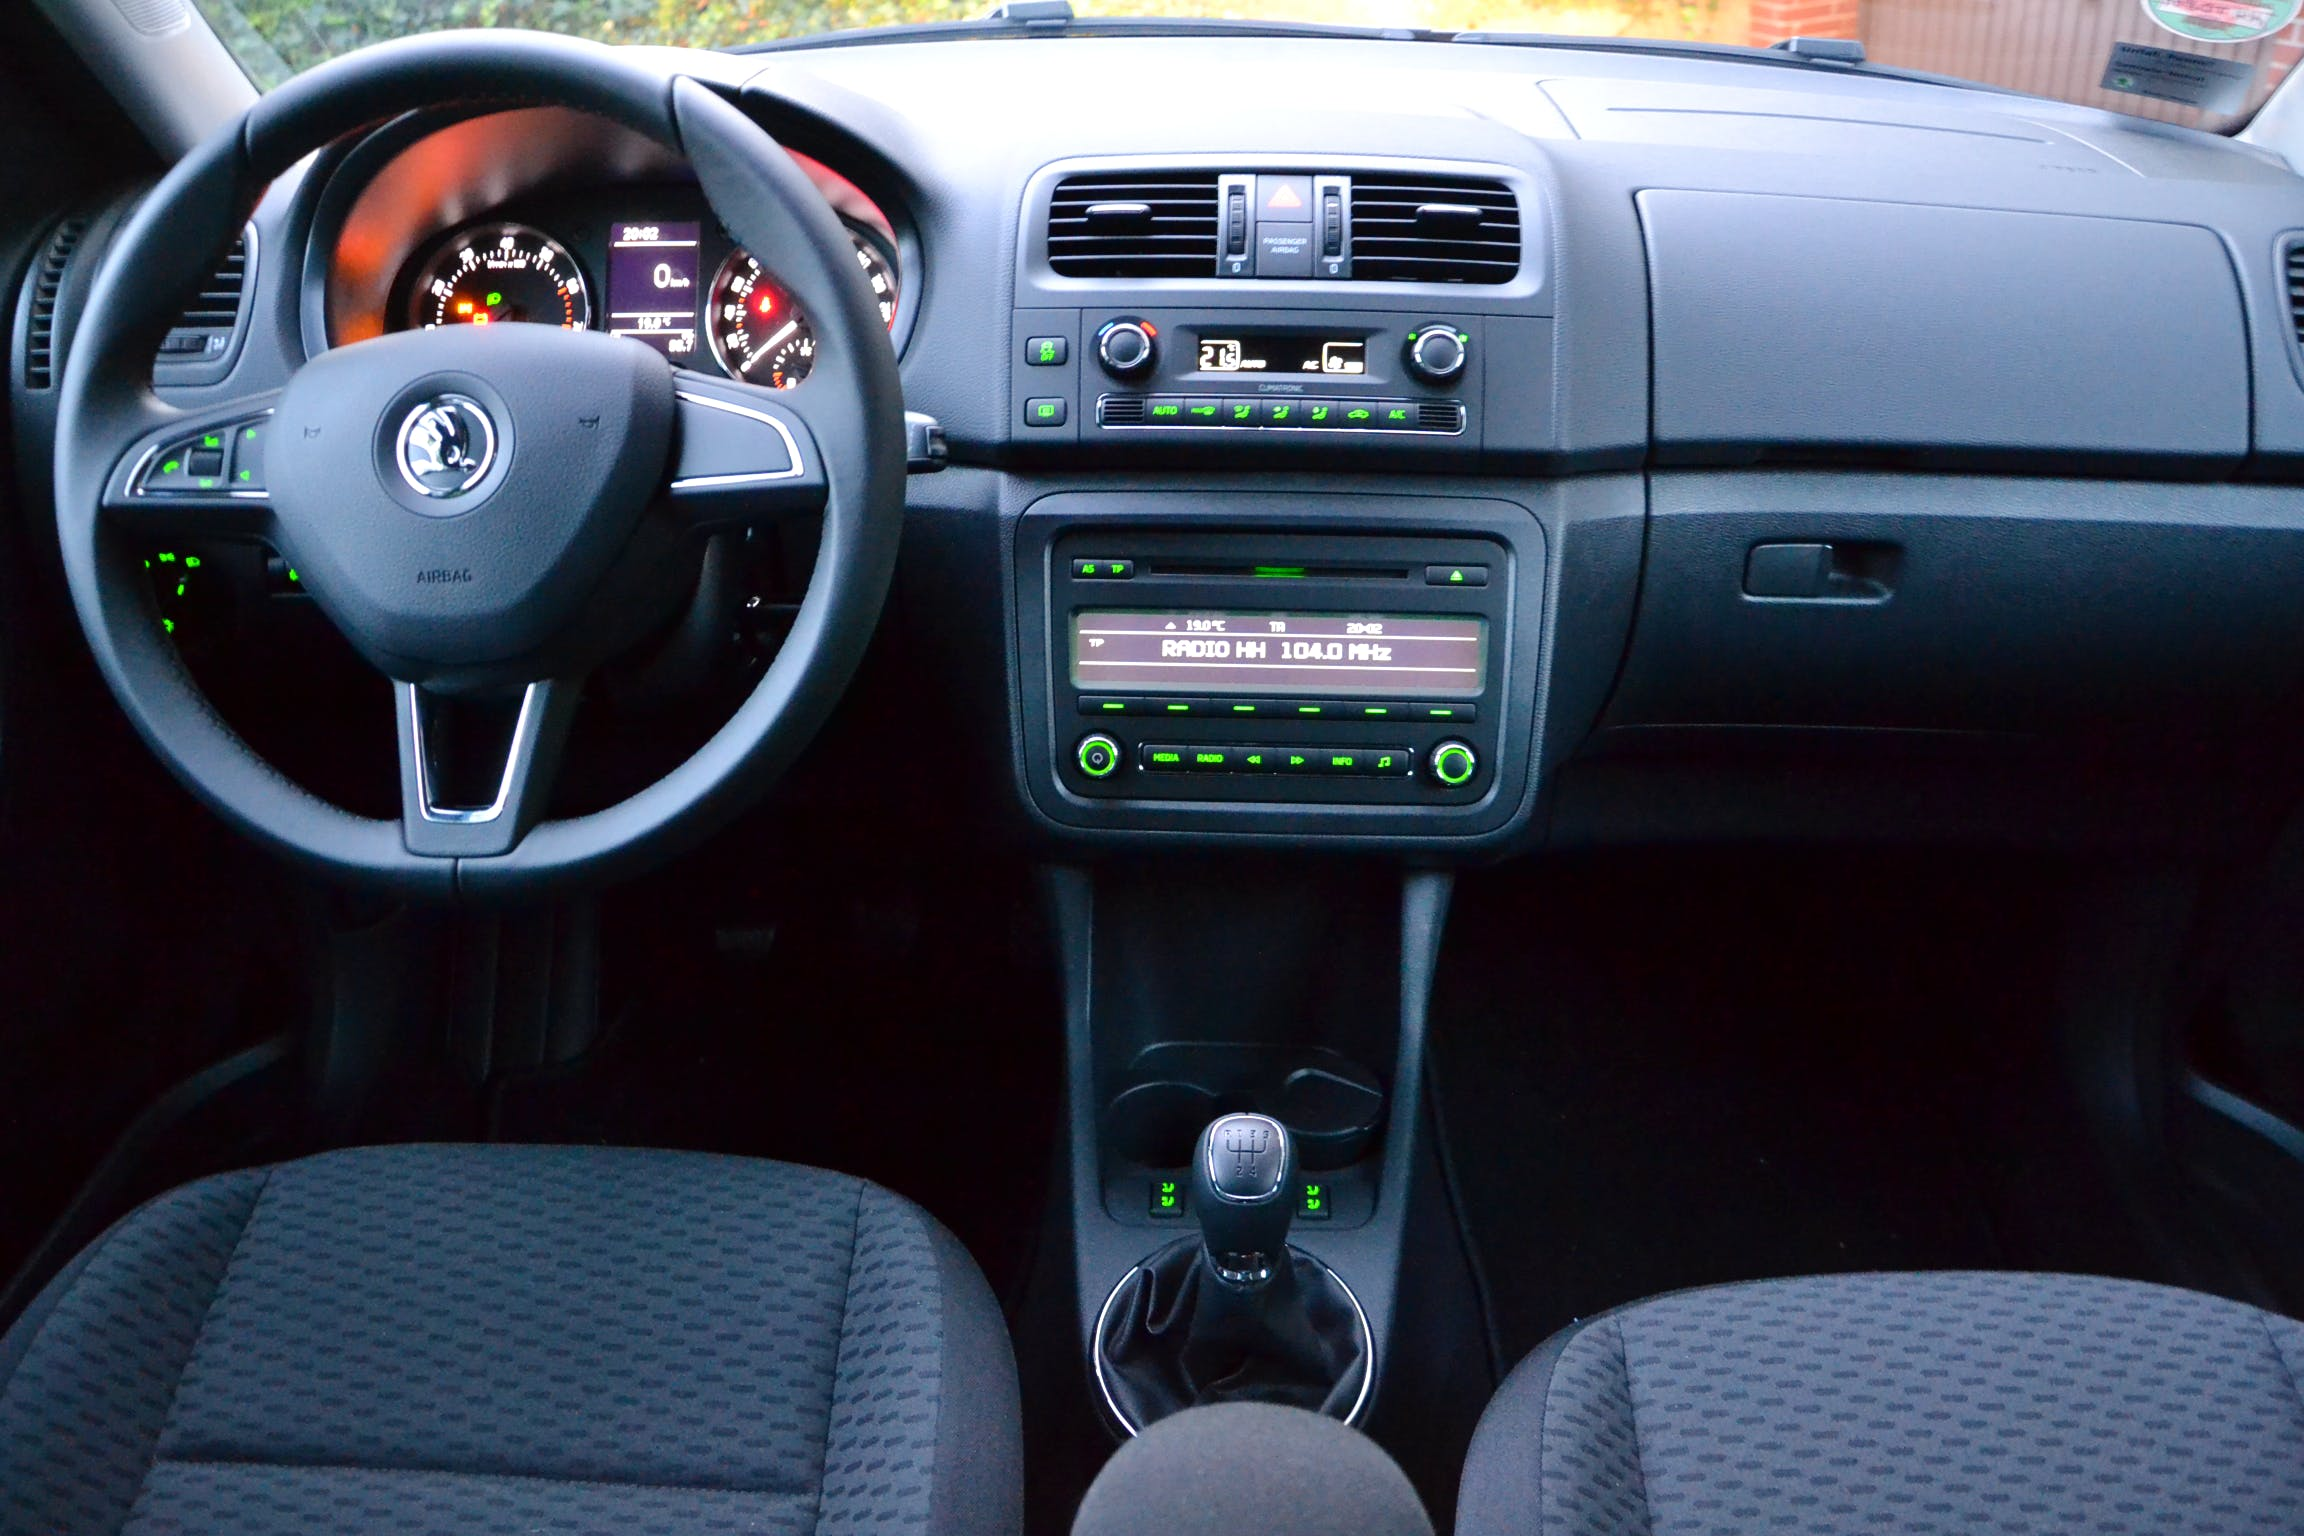 Skoda Roomster 1.2 TSI mit CD-Player